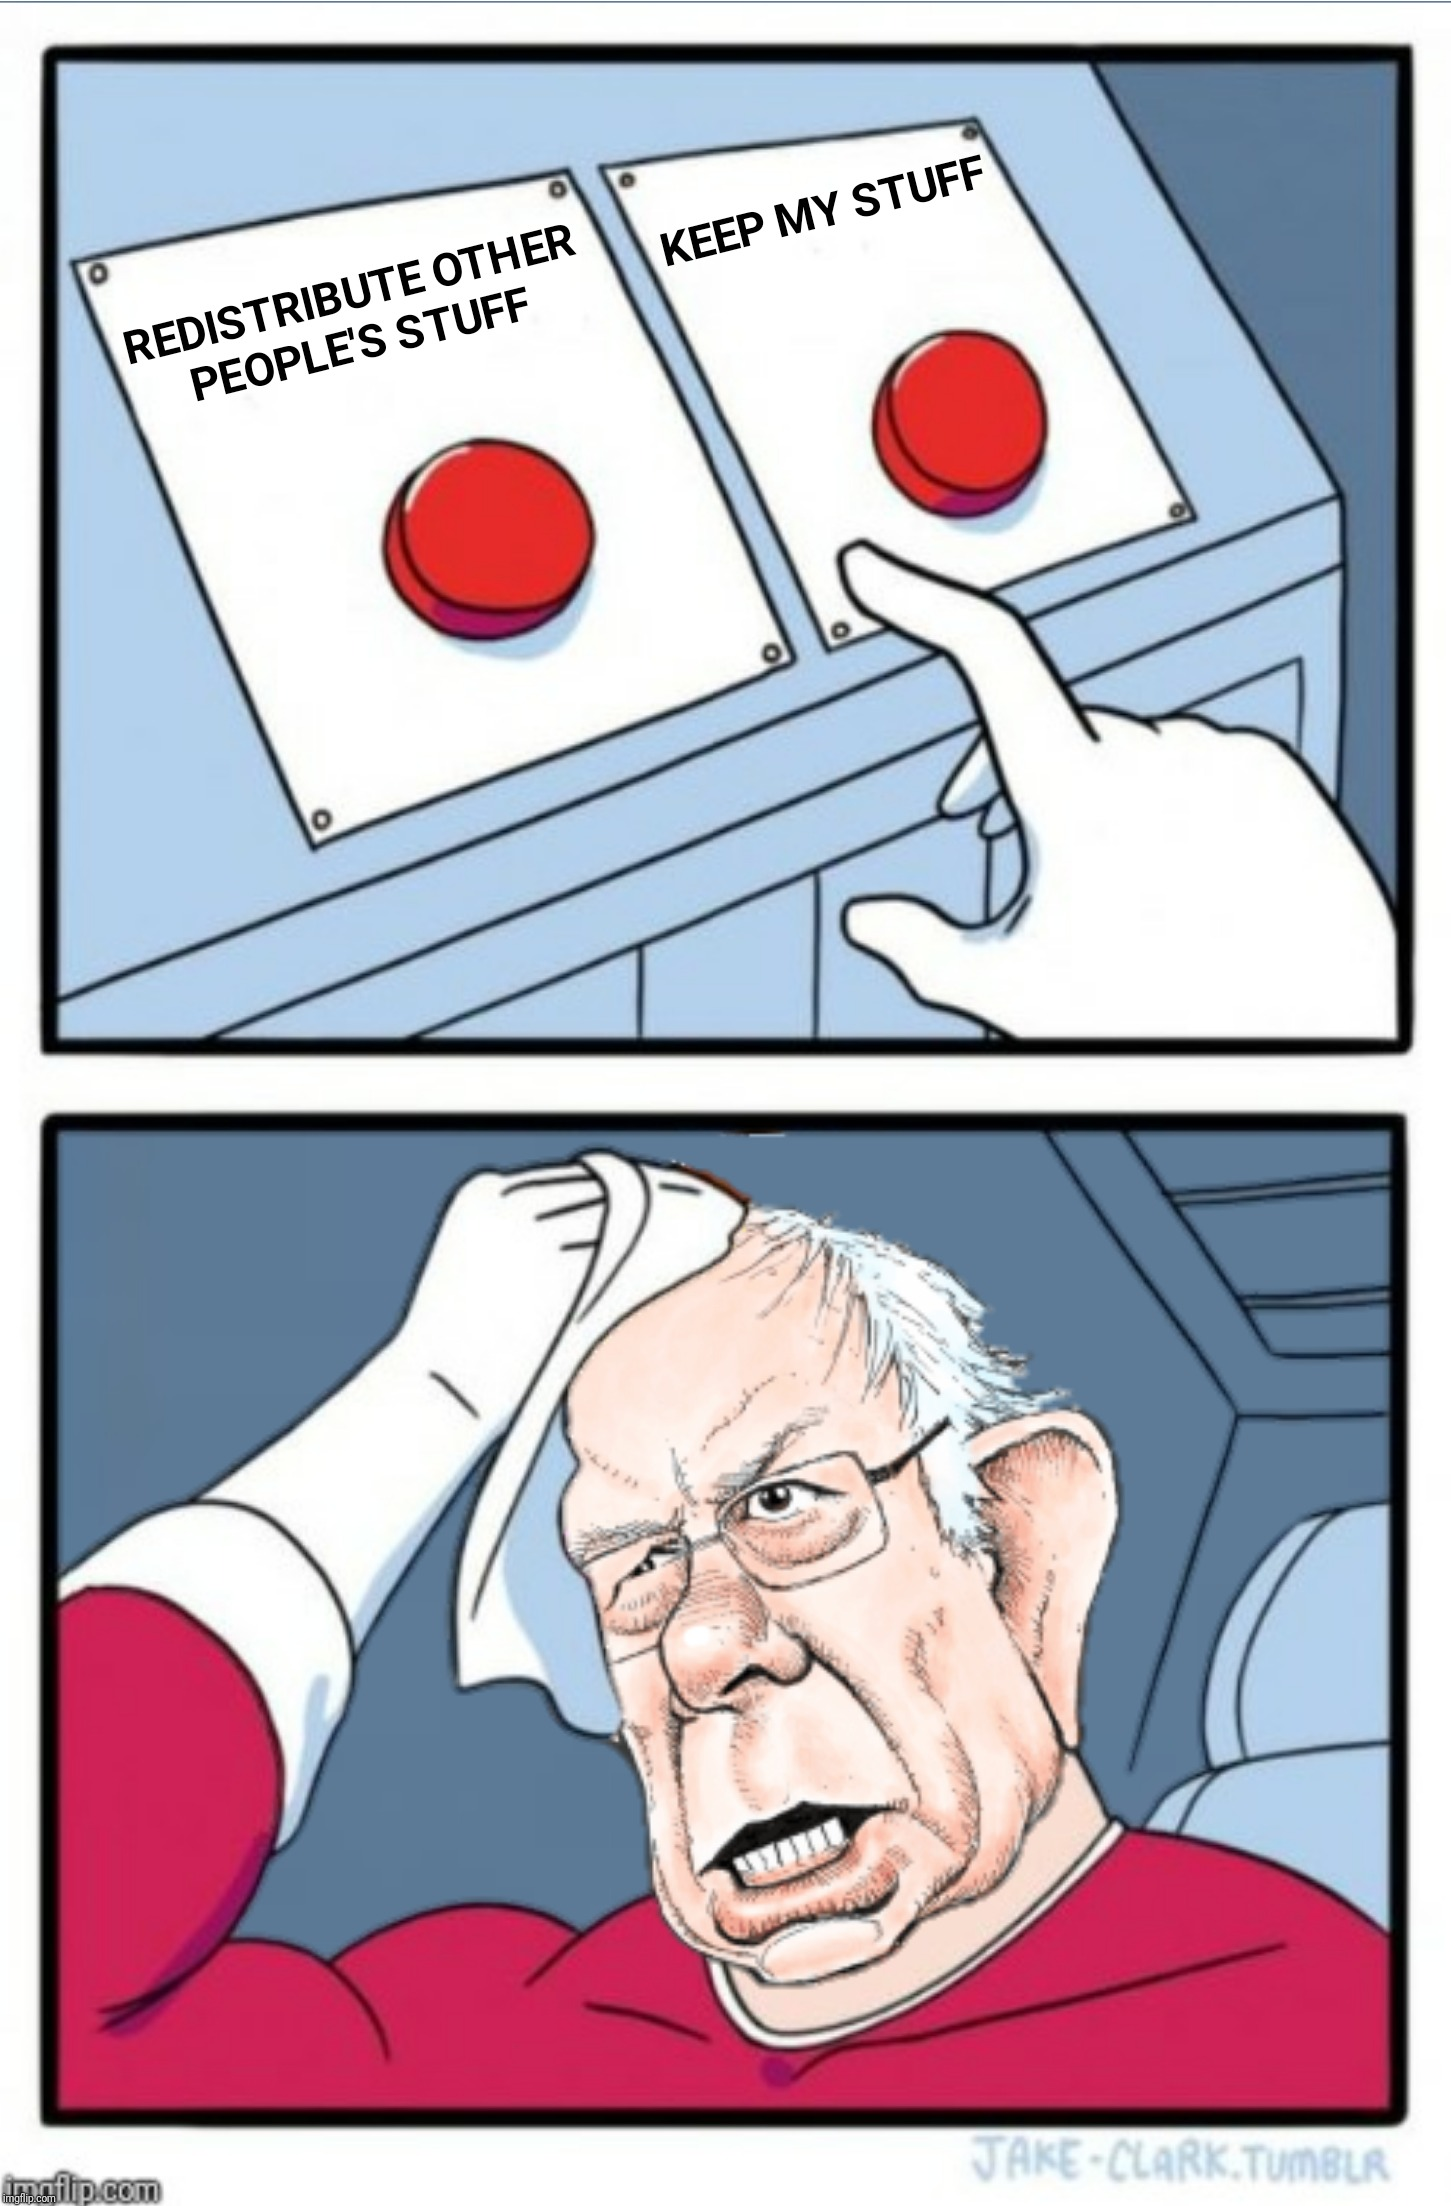 Bad Photoshop Sunday presents:  Do as I say, not as I do |  B | image tagged in bad photoshop sunday,bernie sanders,two buttons,redistribute | made w/ Imgflip meme maker